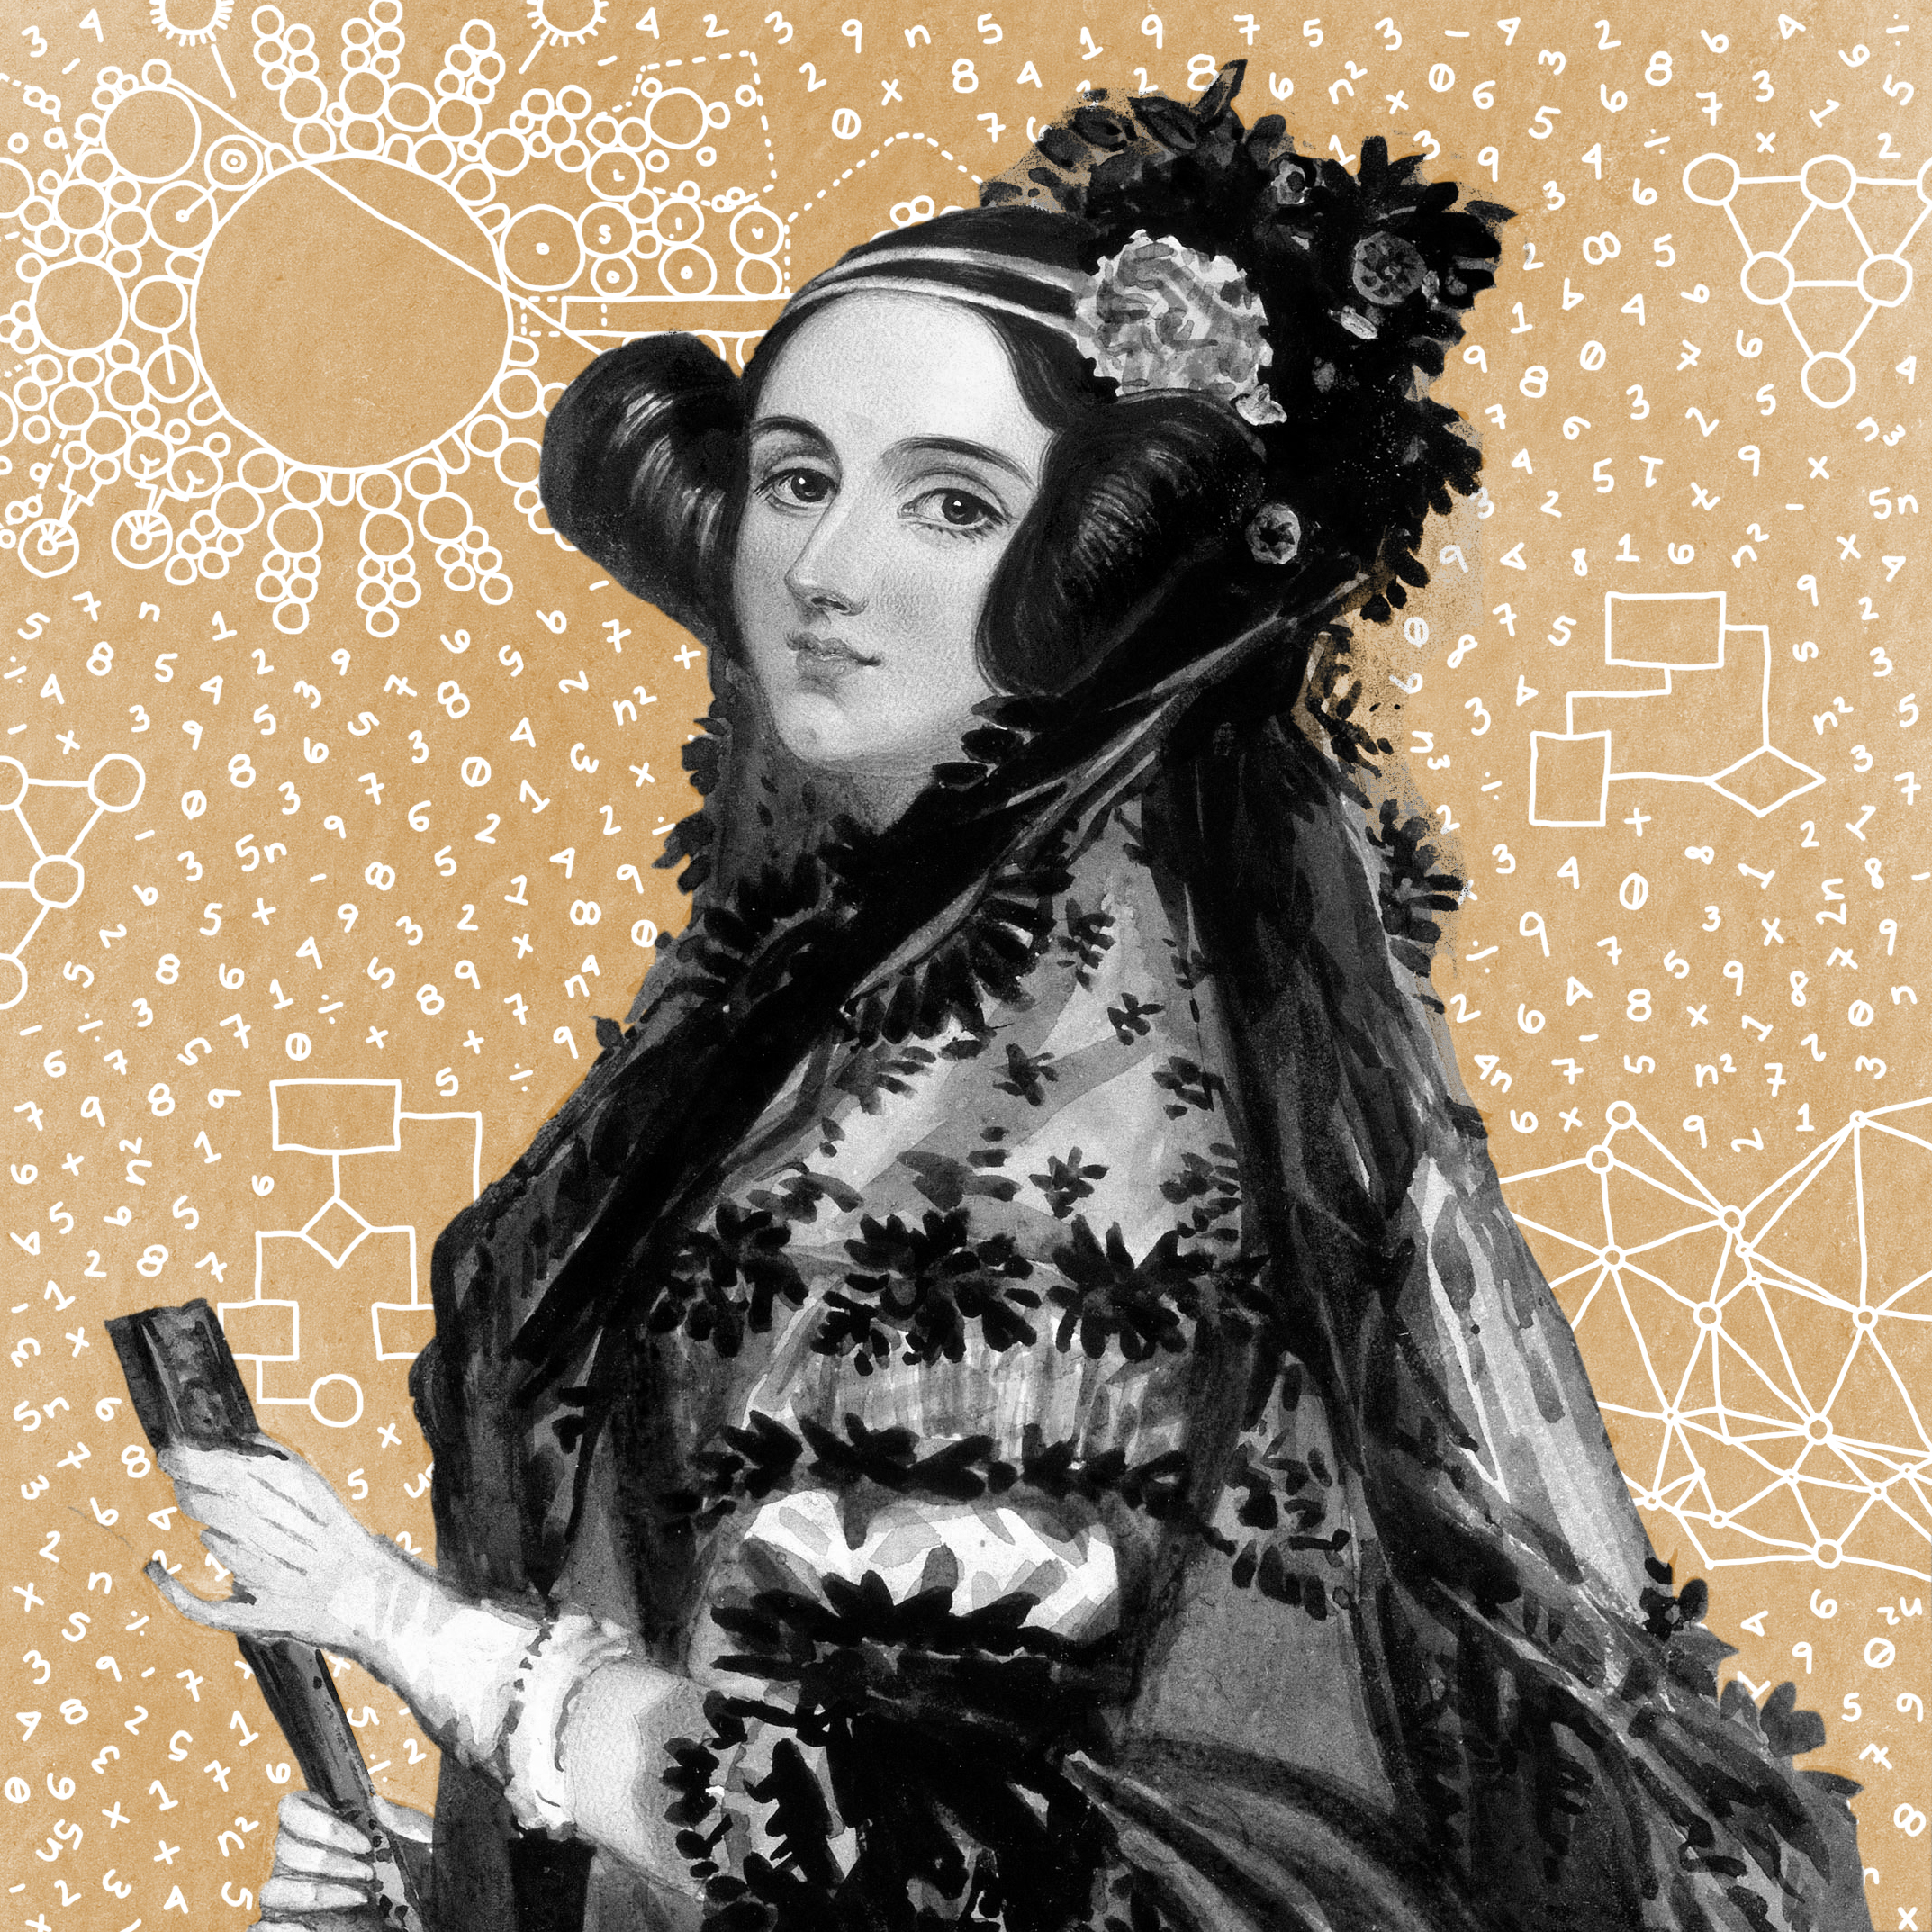 Ada Lovelace   Lovelace was the daughter of the poet Lord Byron, and her mother encouraged her to pursue mathematics in the belief that it would counteract any poetic leanings inherited from her father. She befriended Charles Babbage, inventor of the first programmable computer. While Babbage had conceived his computers as tools for mathematical calculations, but Lovelace was the first to realize that computers could process any data representable by numbers, foreshadowing modern computing. She wrote an algorithm for the Analytical Engine, which is now considered the first computer program. Sadly, Lovelace died at a young age, while Babbage was frustrated in his attempts to build his engines, setting the science of computing back decades.